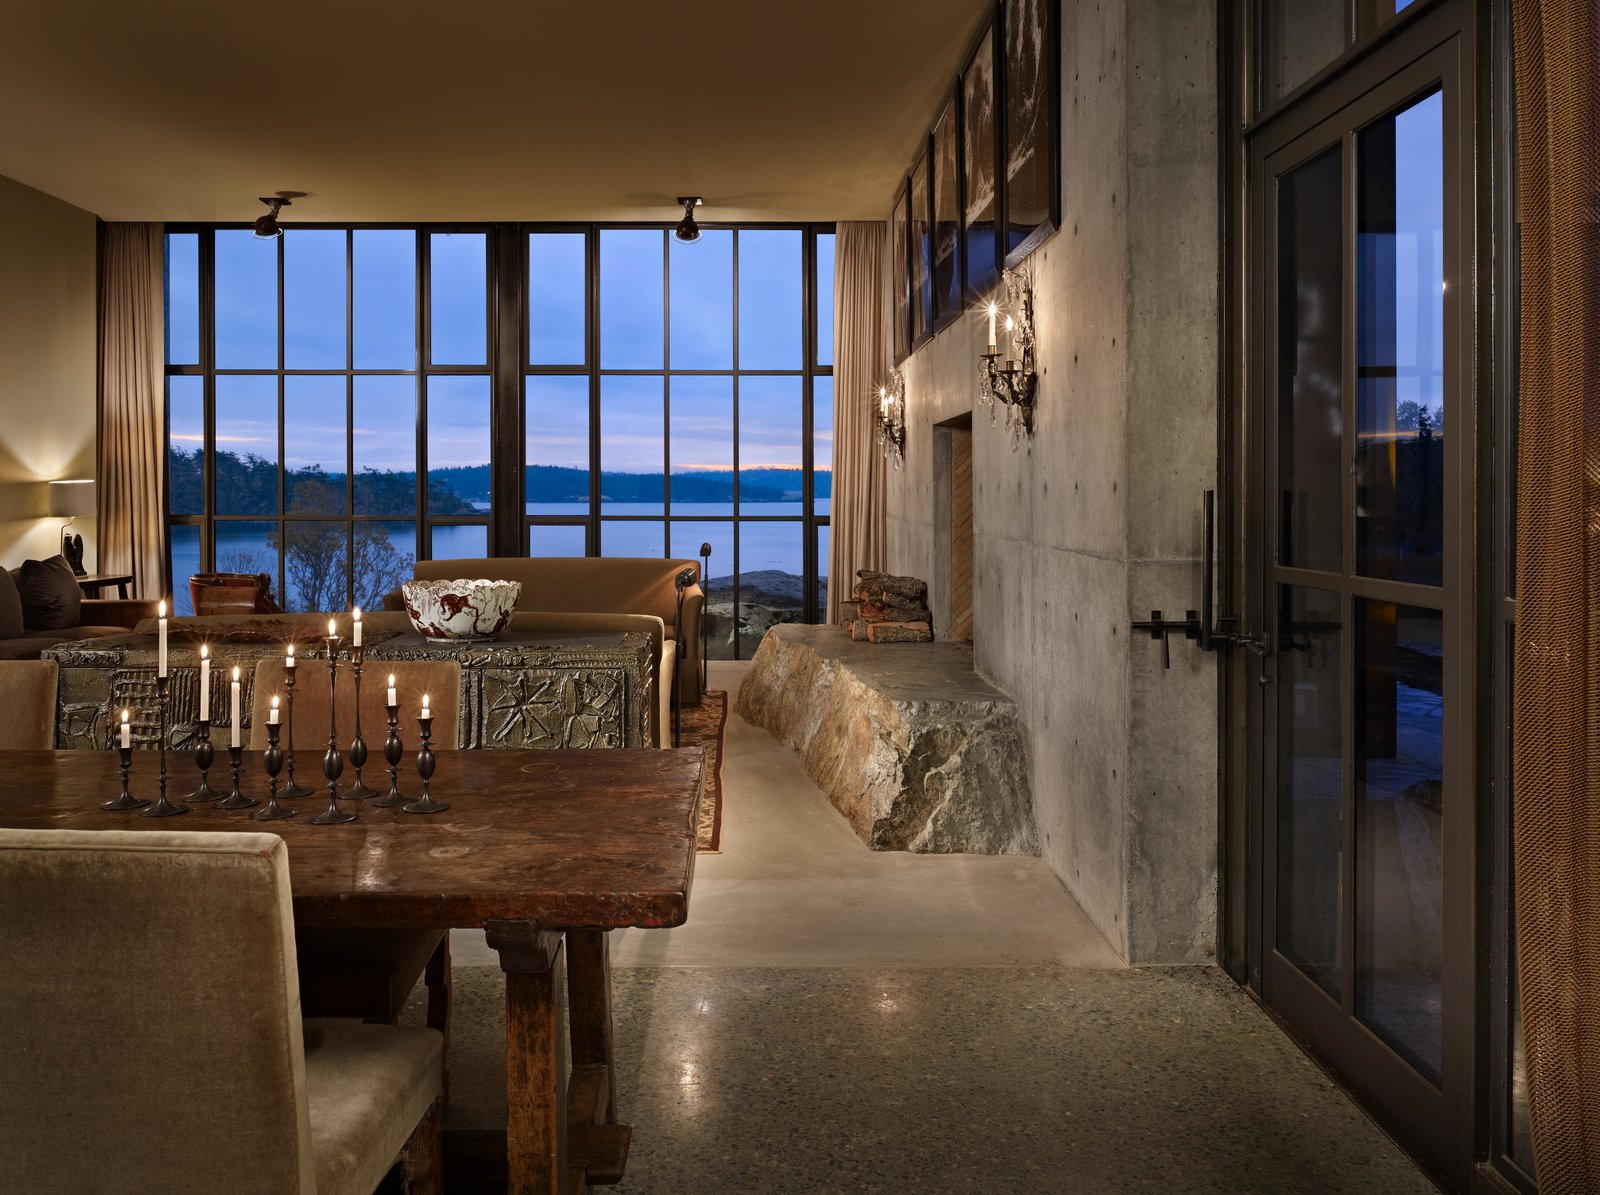 Dining, Bench, Concrete, Table, Standard Layout, Wall, Ceiling, Chair, and Wood Burning The Pierre | Olson Kundig  Best Dining Wood Burning Wall Bench Photos from The Pierre